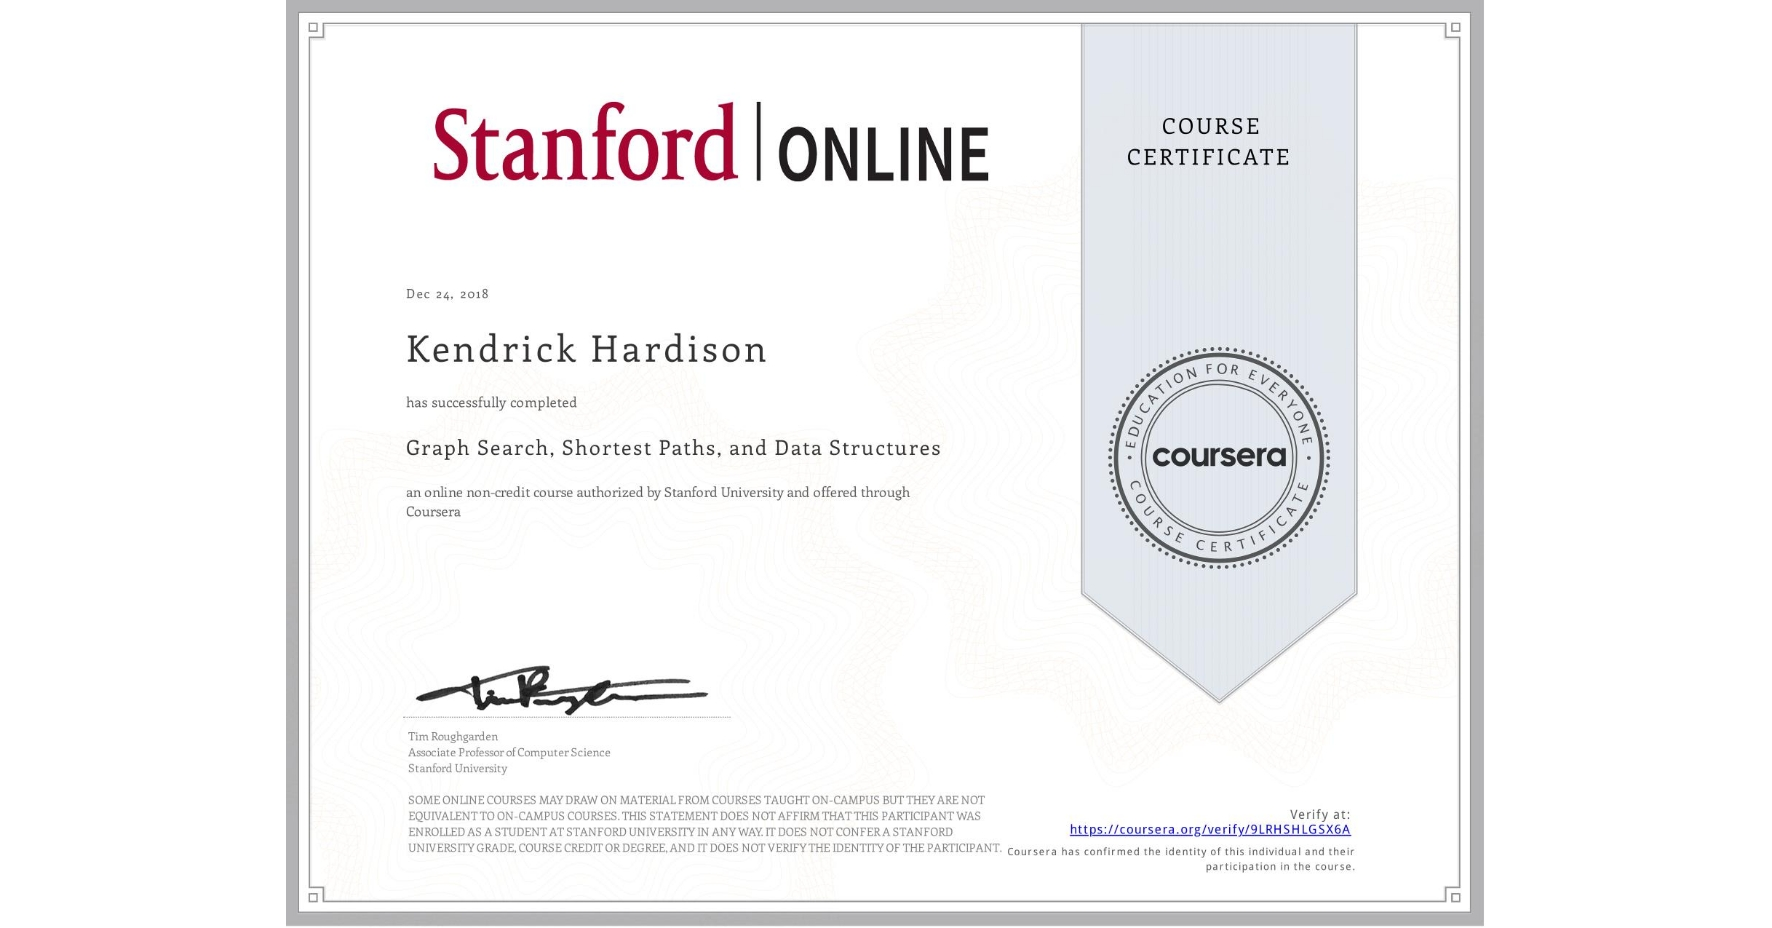 View certificate for Kendrick Hardison, Graph Search, Shortest Paths, and Data Structures, an online non-credit course authorized by Stanford University and offered through Coursera